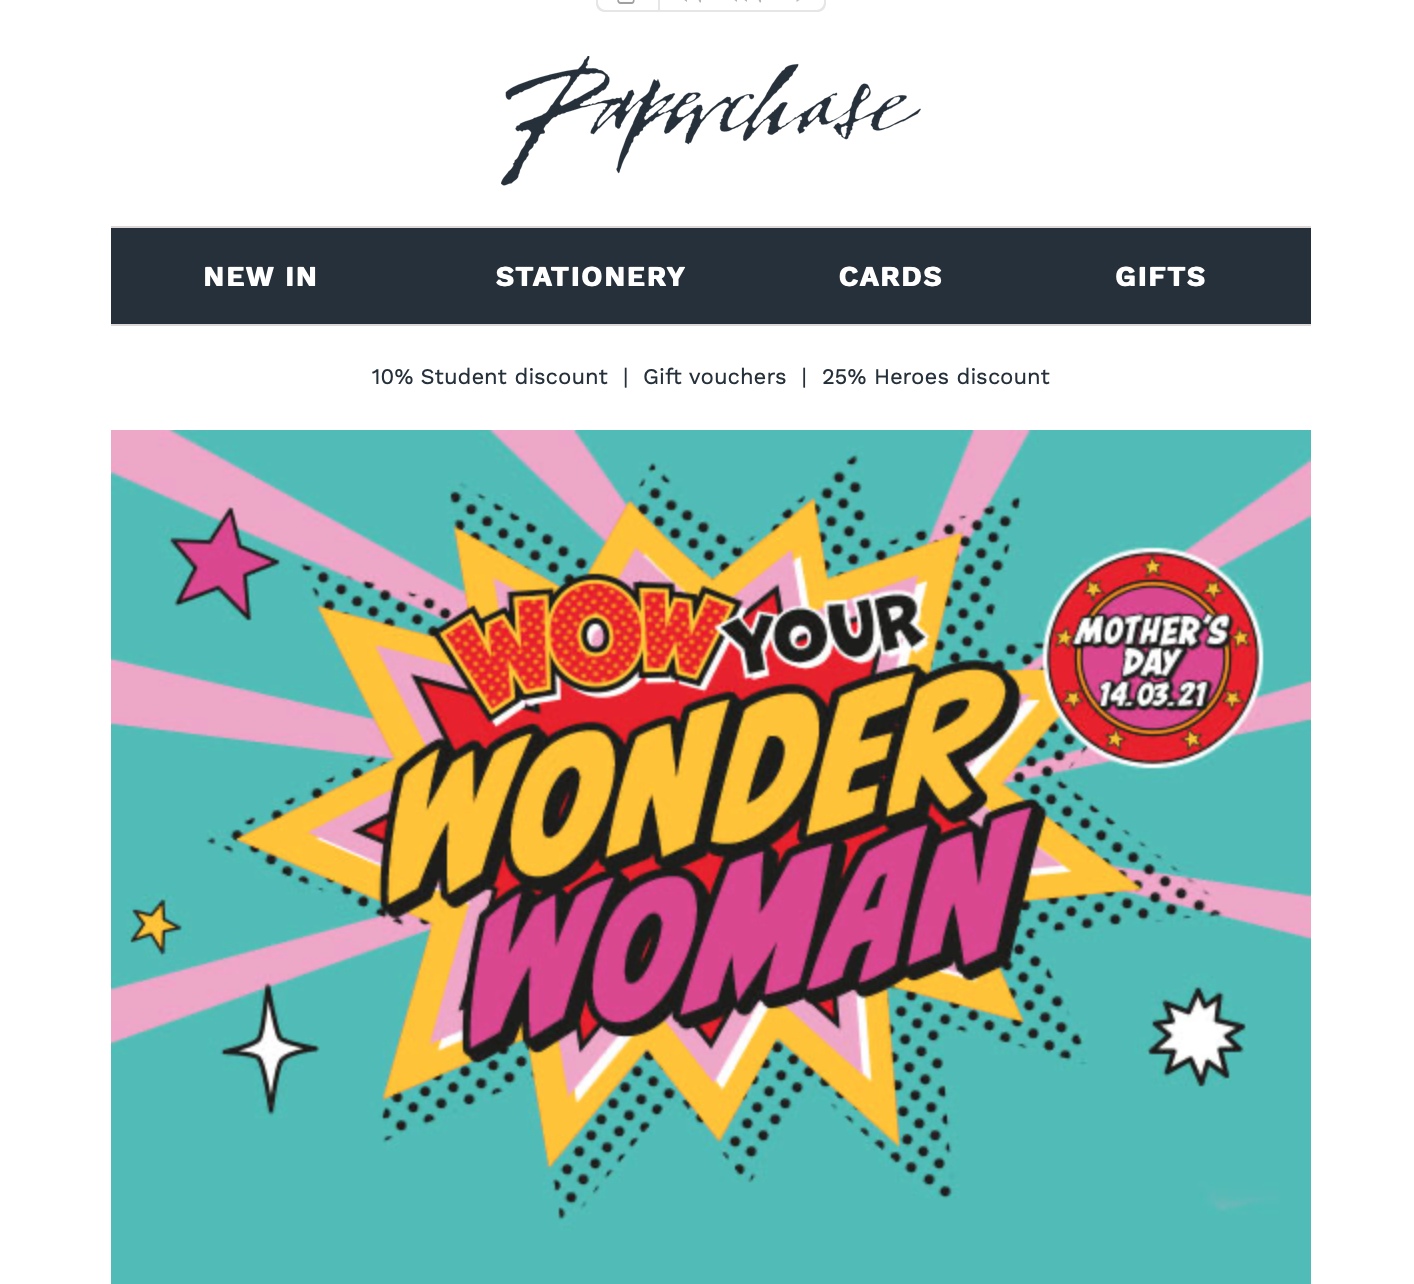 Above: Paperchase is actively promoting Mother's Day under the new ownership.